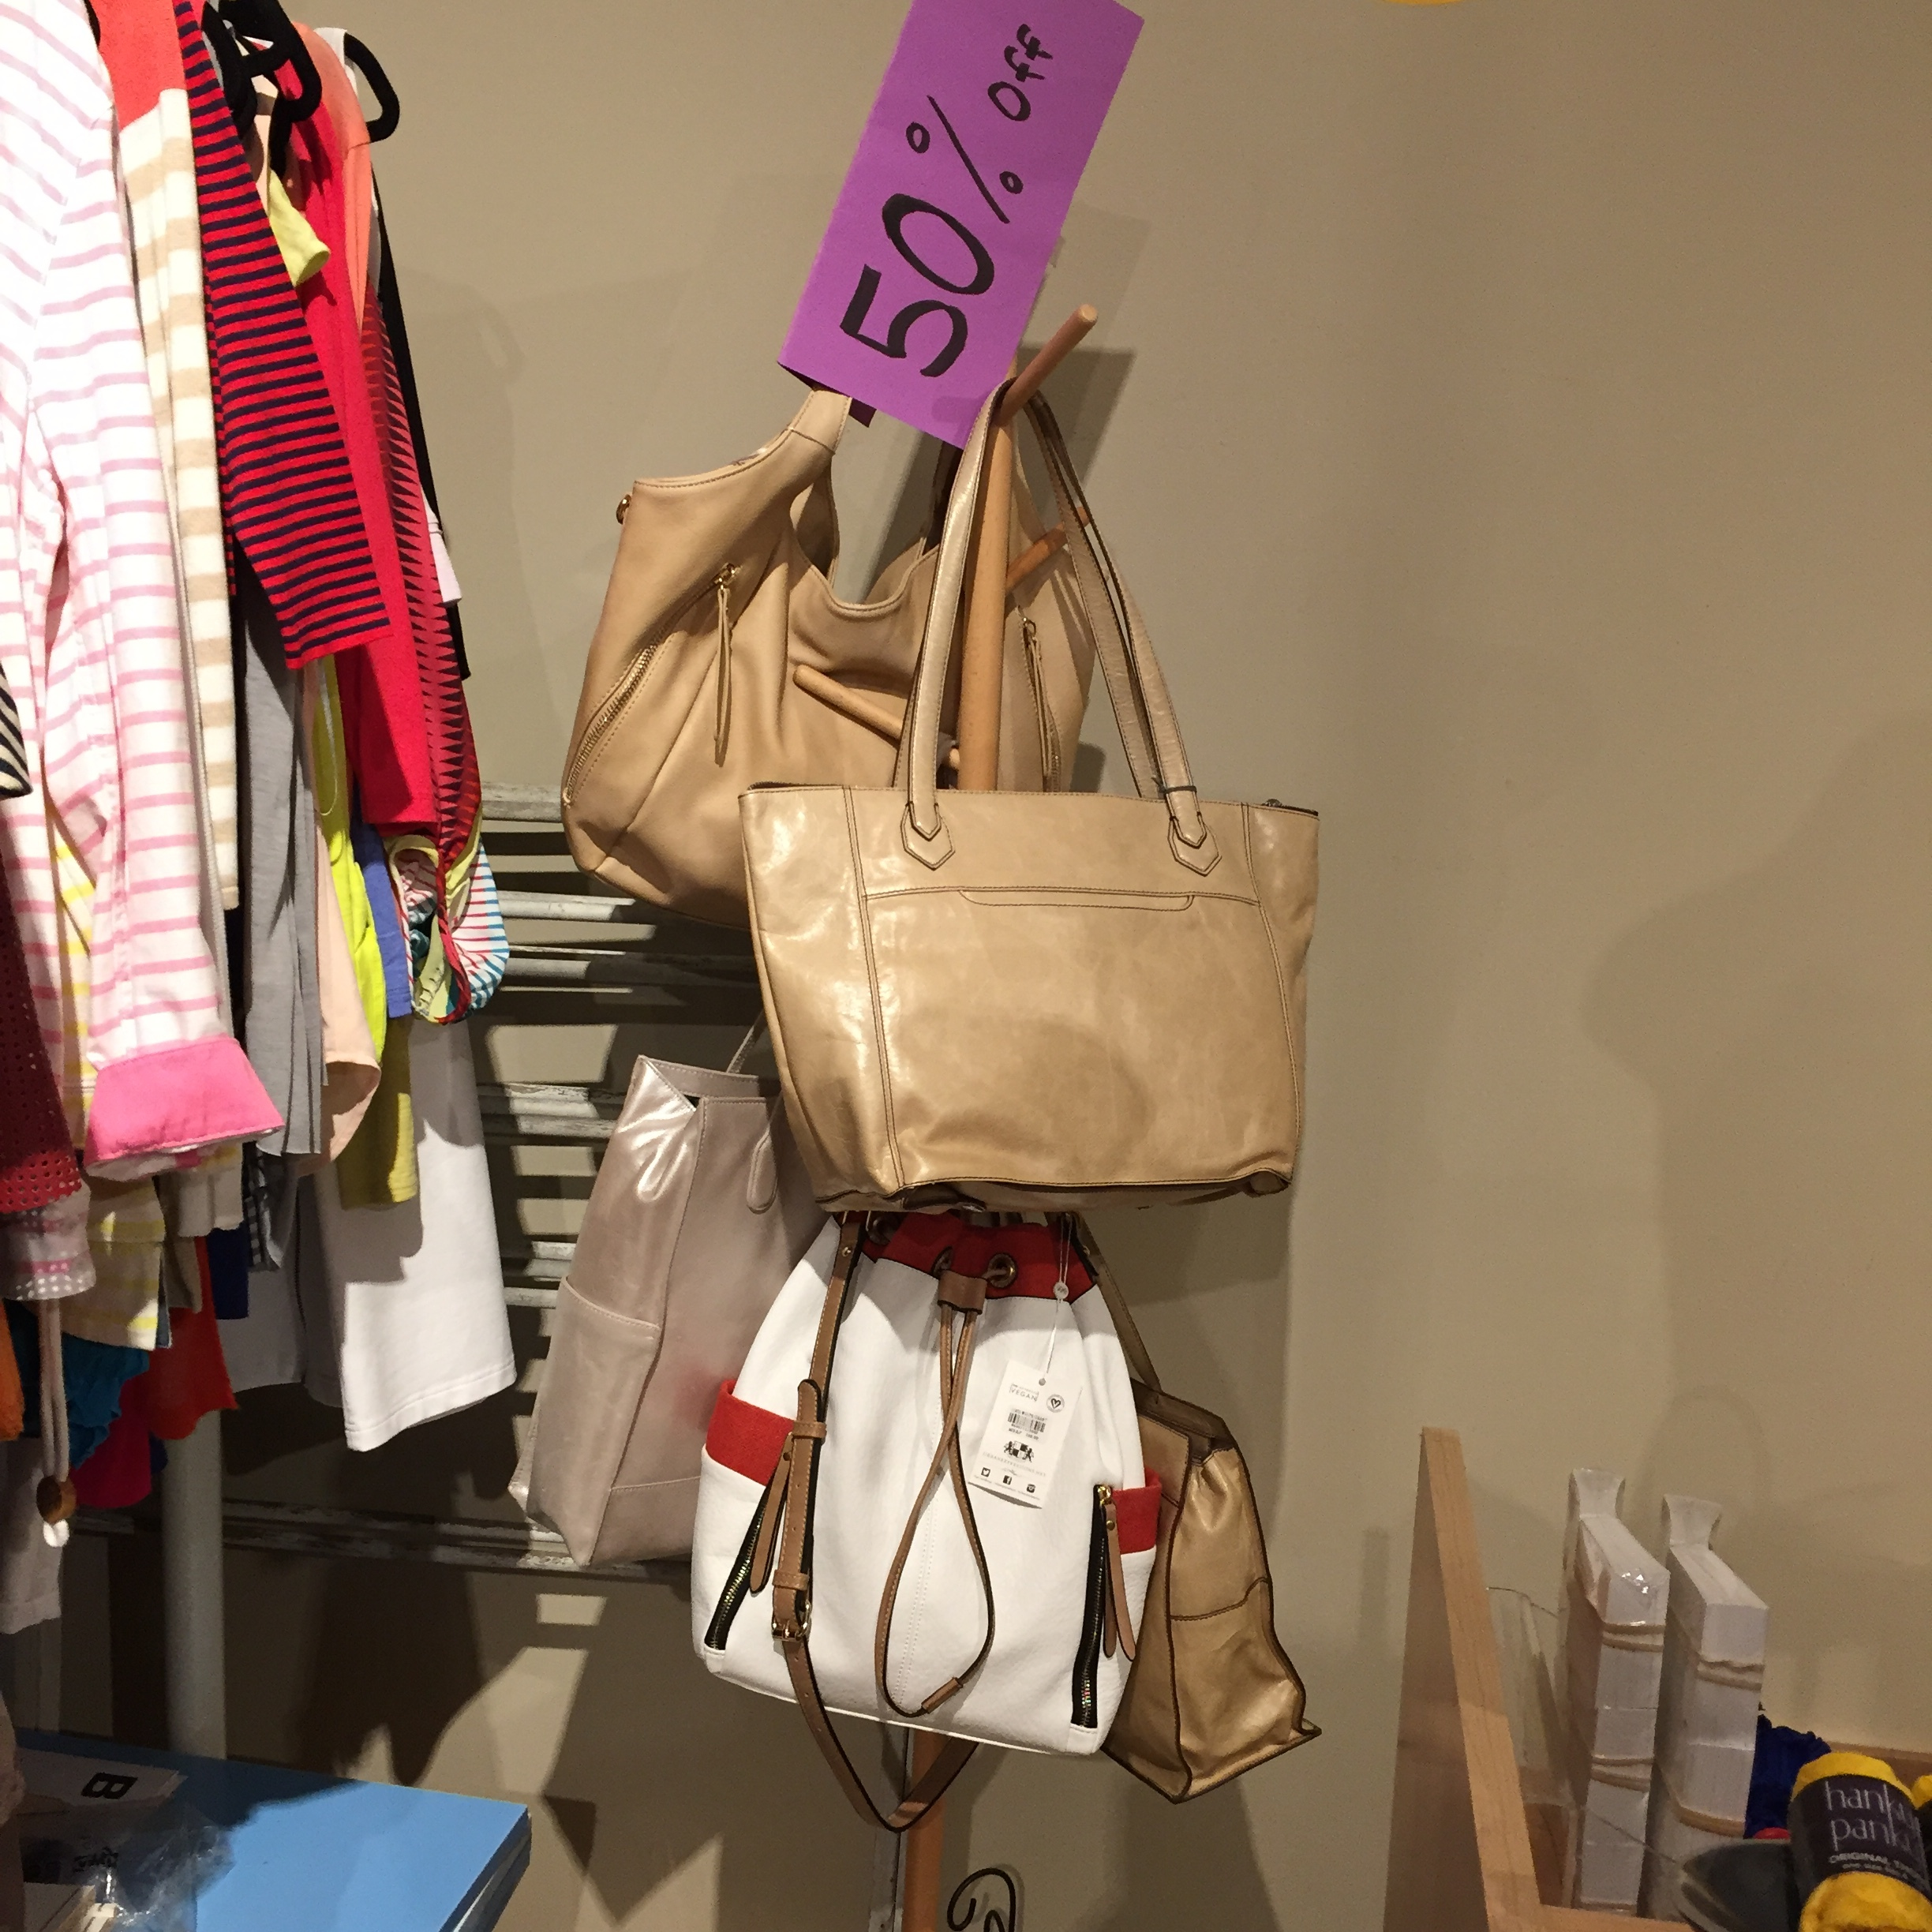 Purses and accessories on sale at Echo